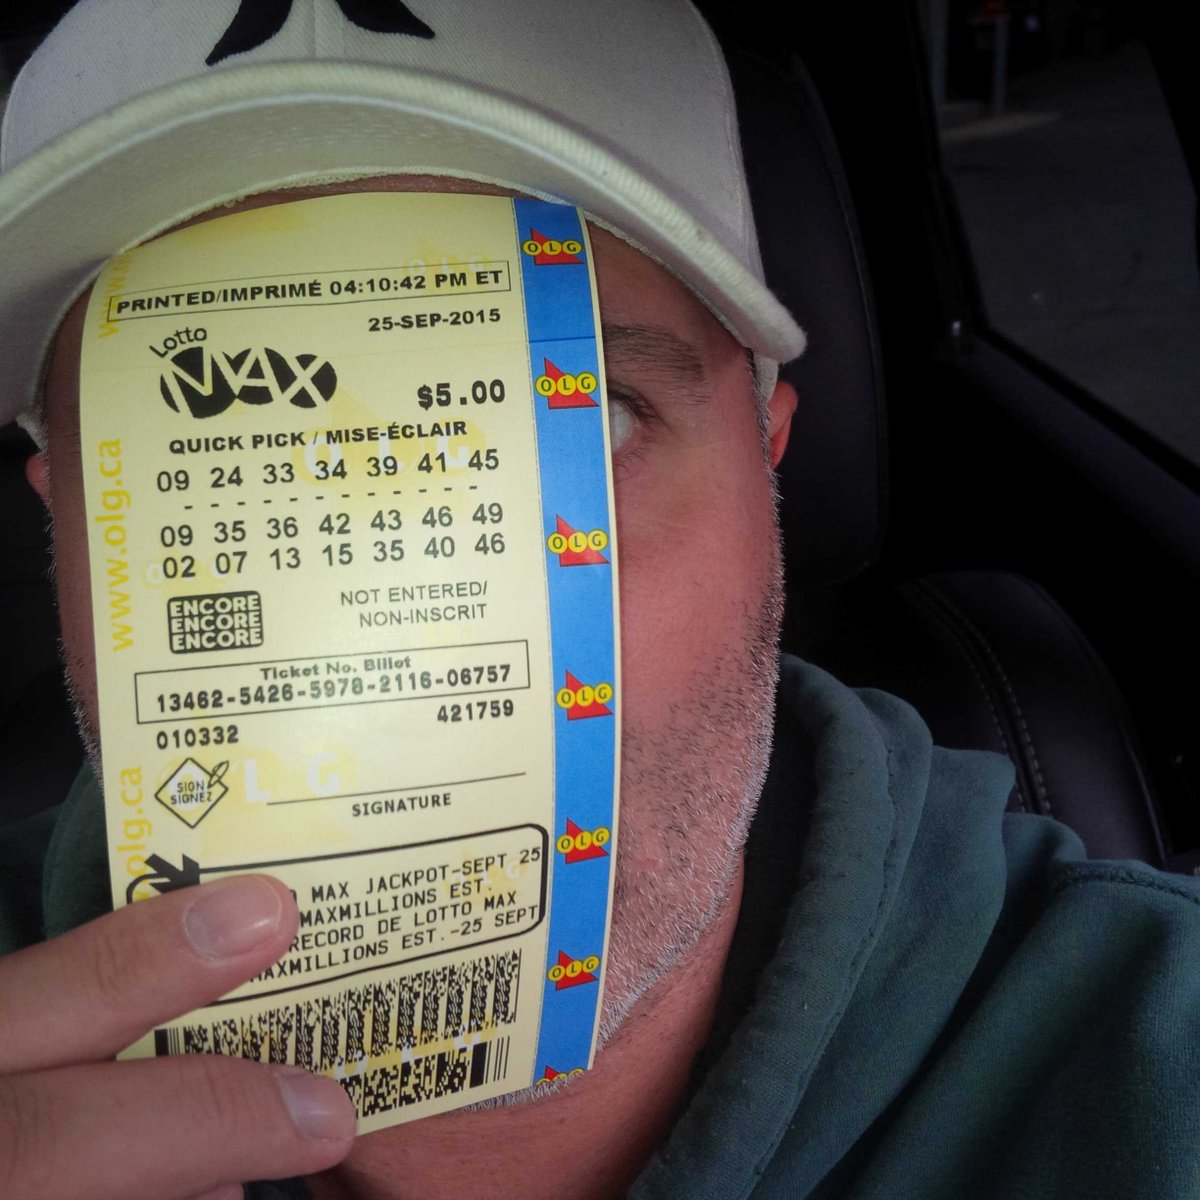 IF this ticket wins the jackpot of $60 million on Friday, I will give HALF to one of you who RT this pic! #Havesies http://t.co/yd7m0aitp7